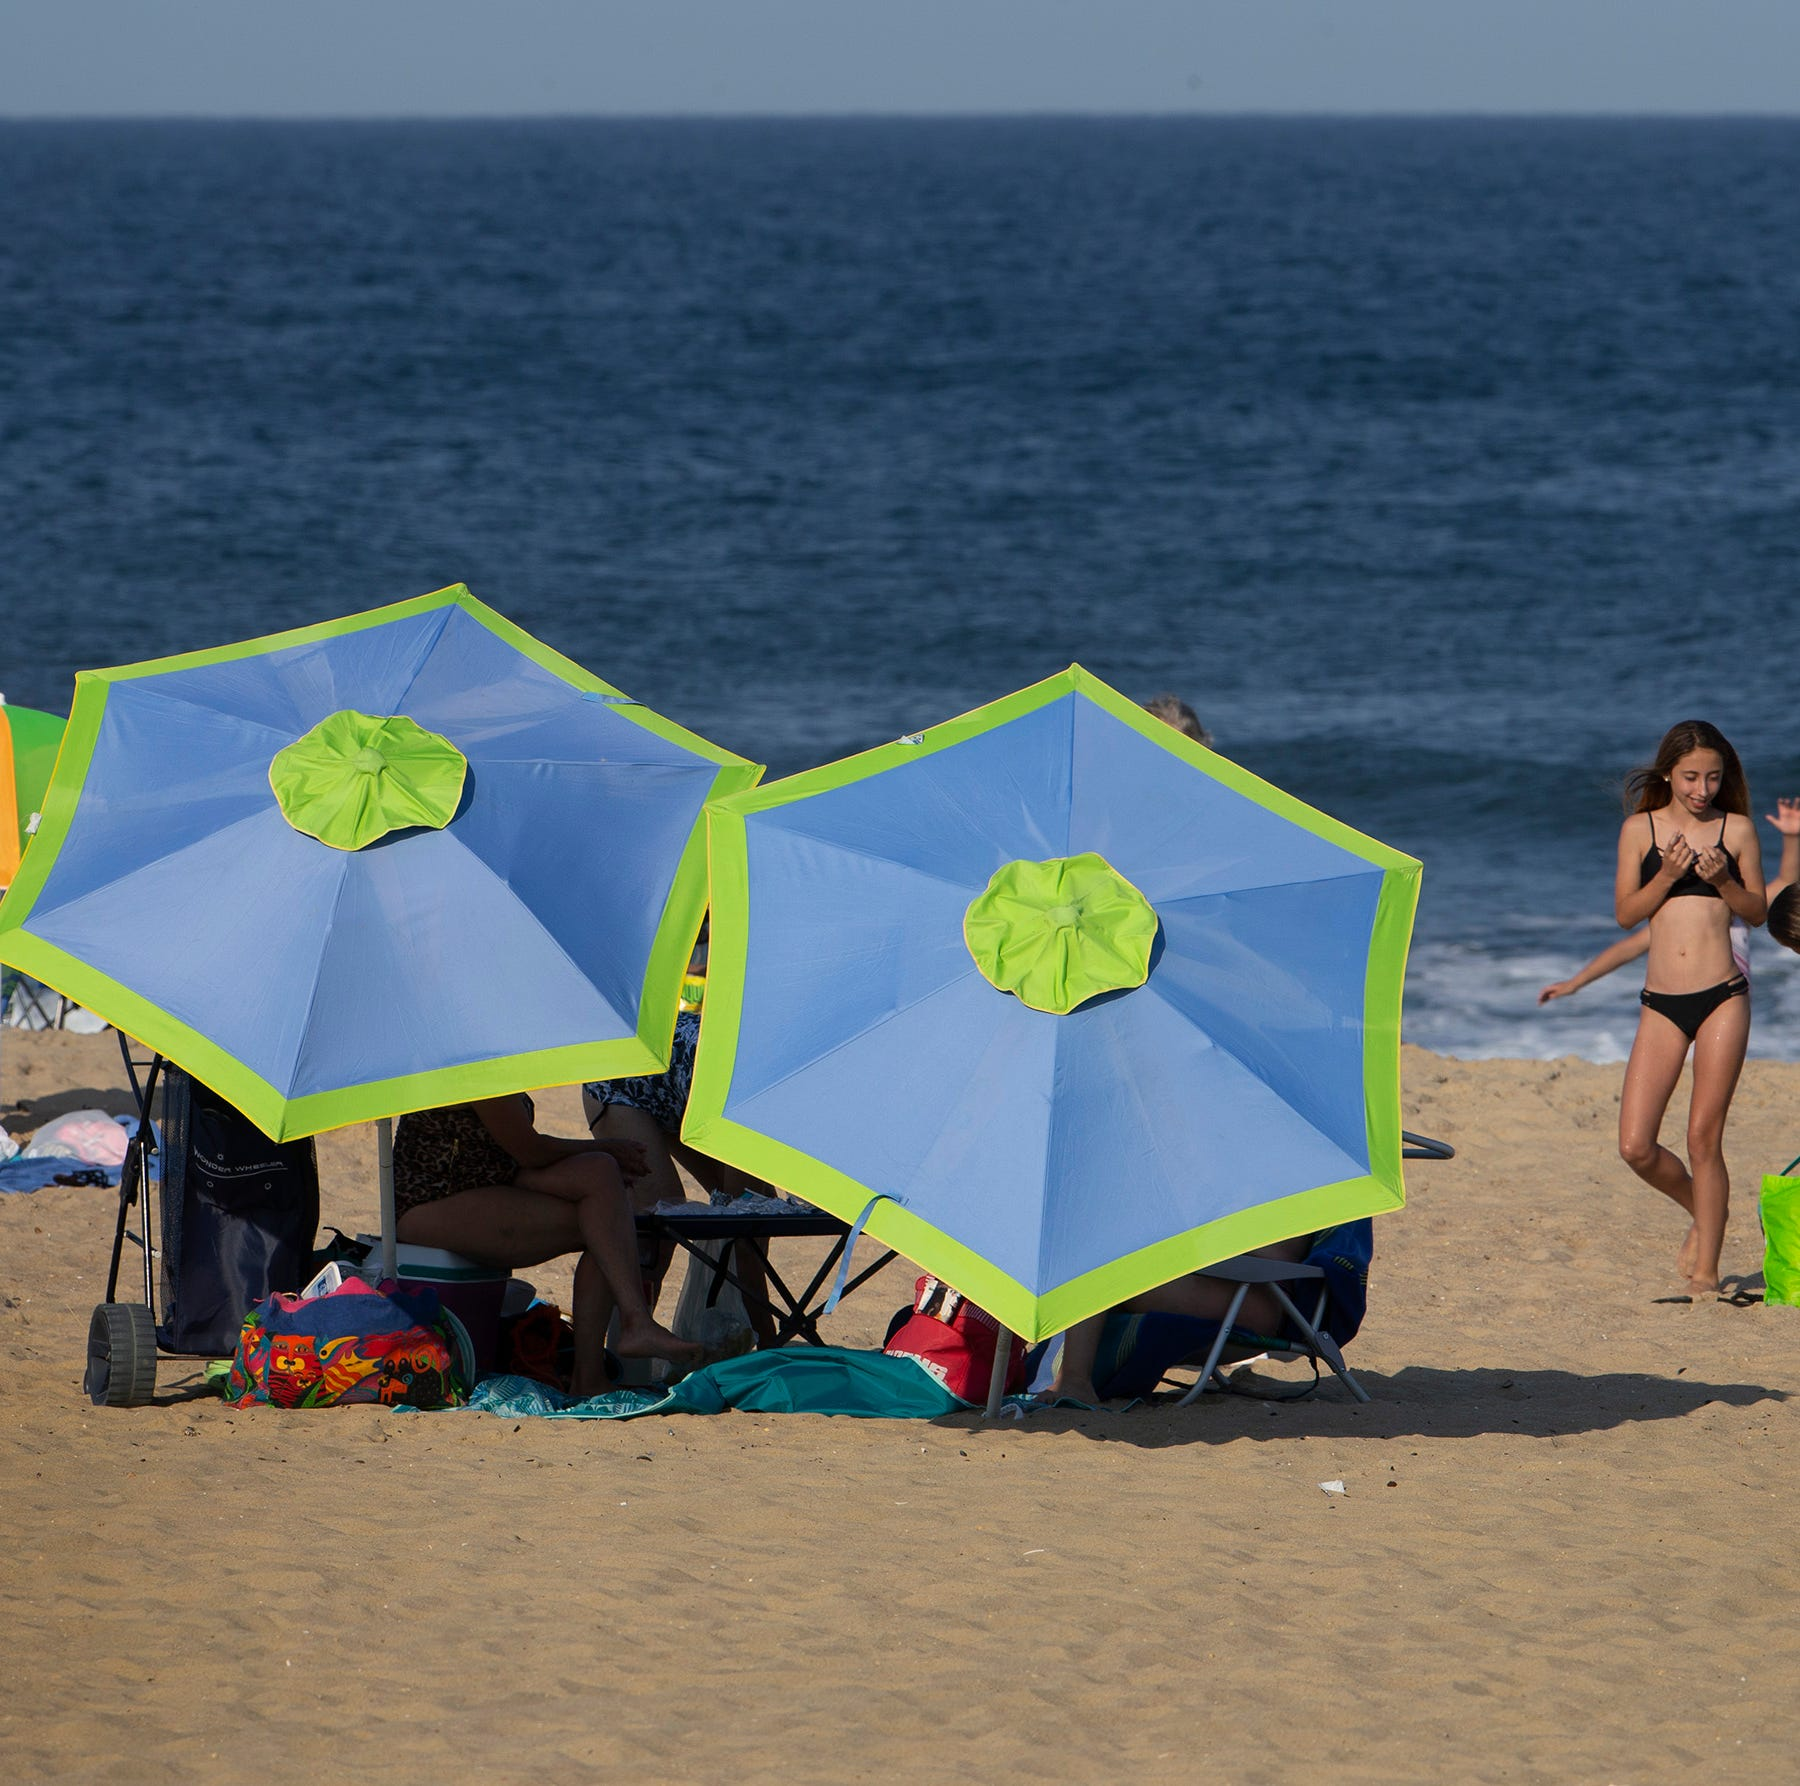 Belmar jacked up parking fees, violated civil rights of beachgoers: Appellate court